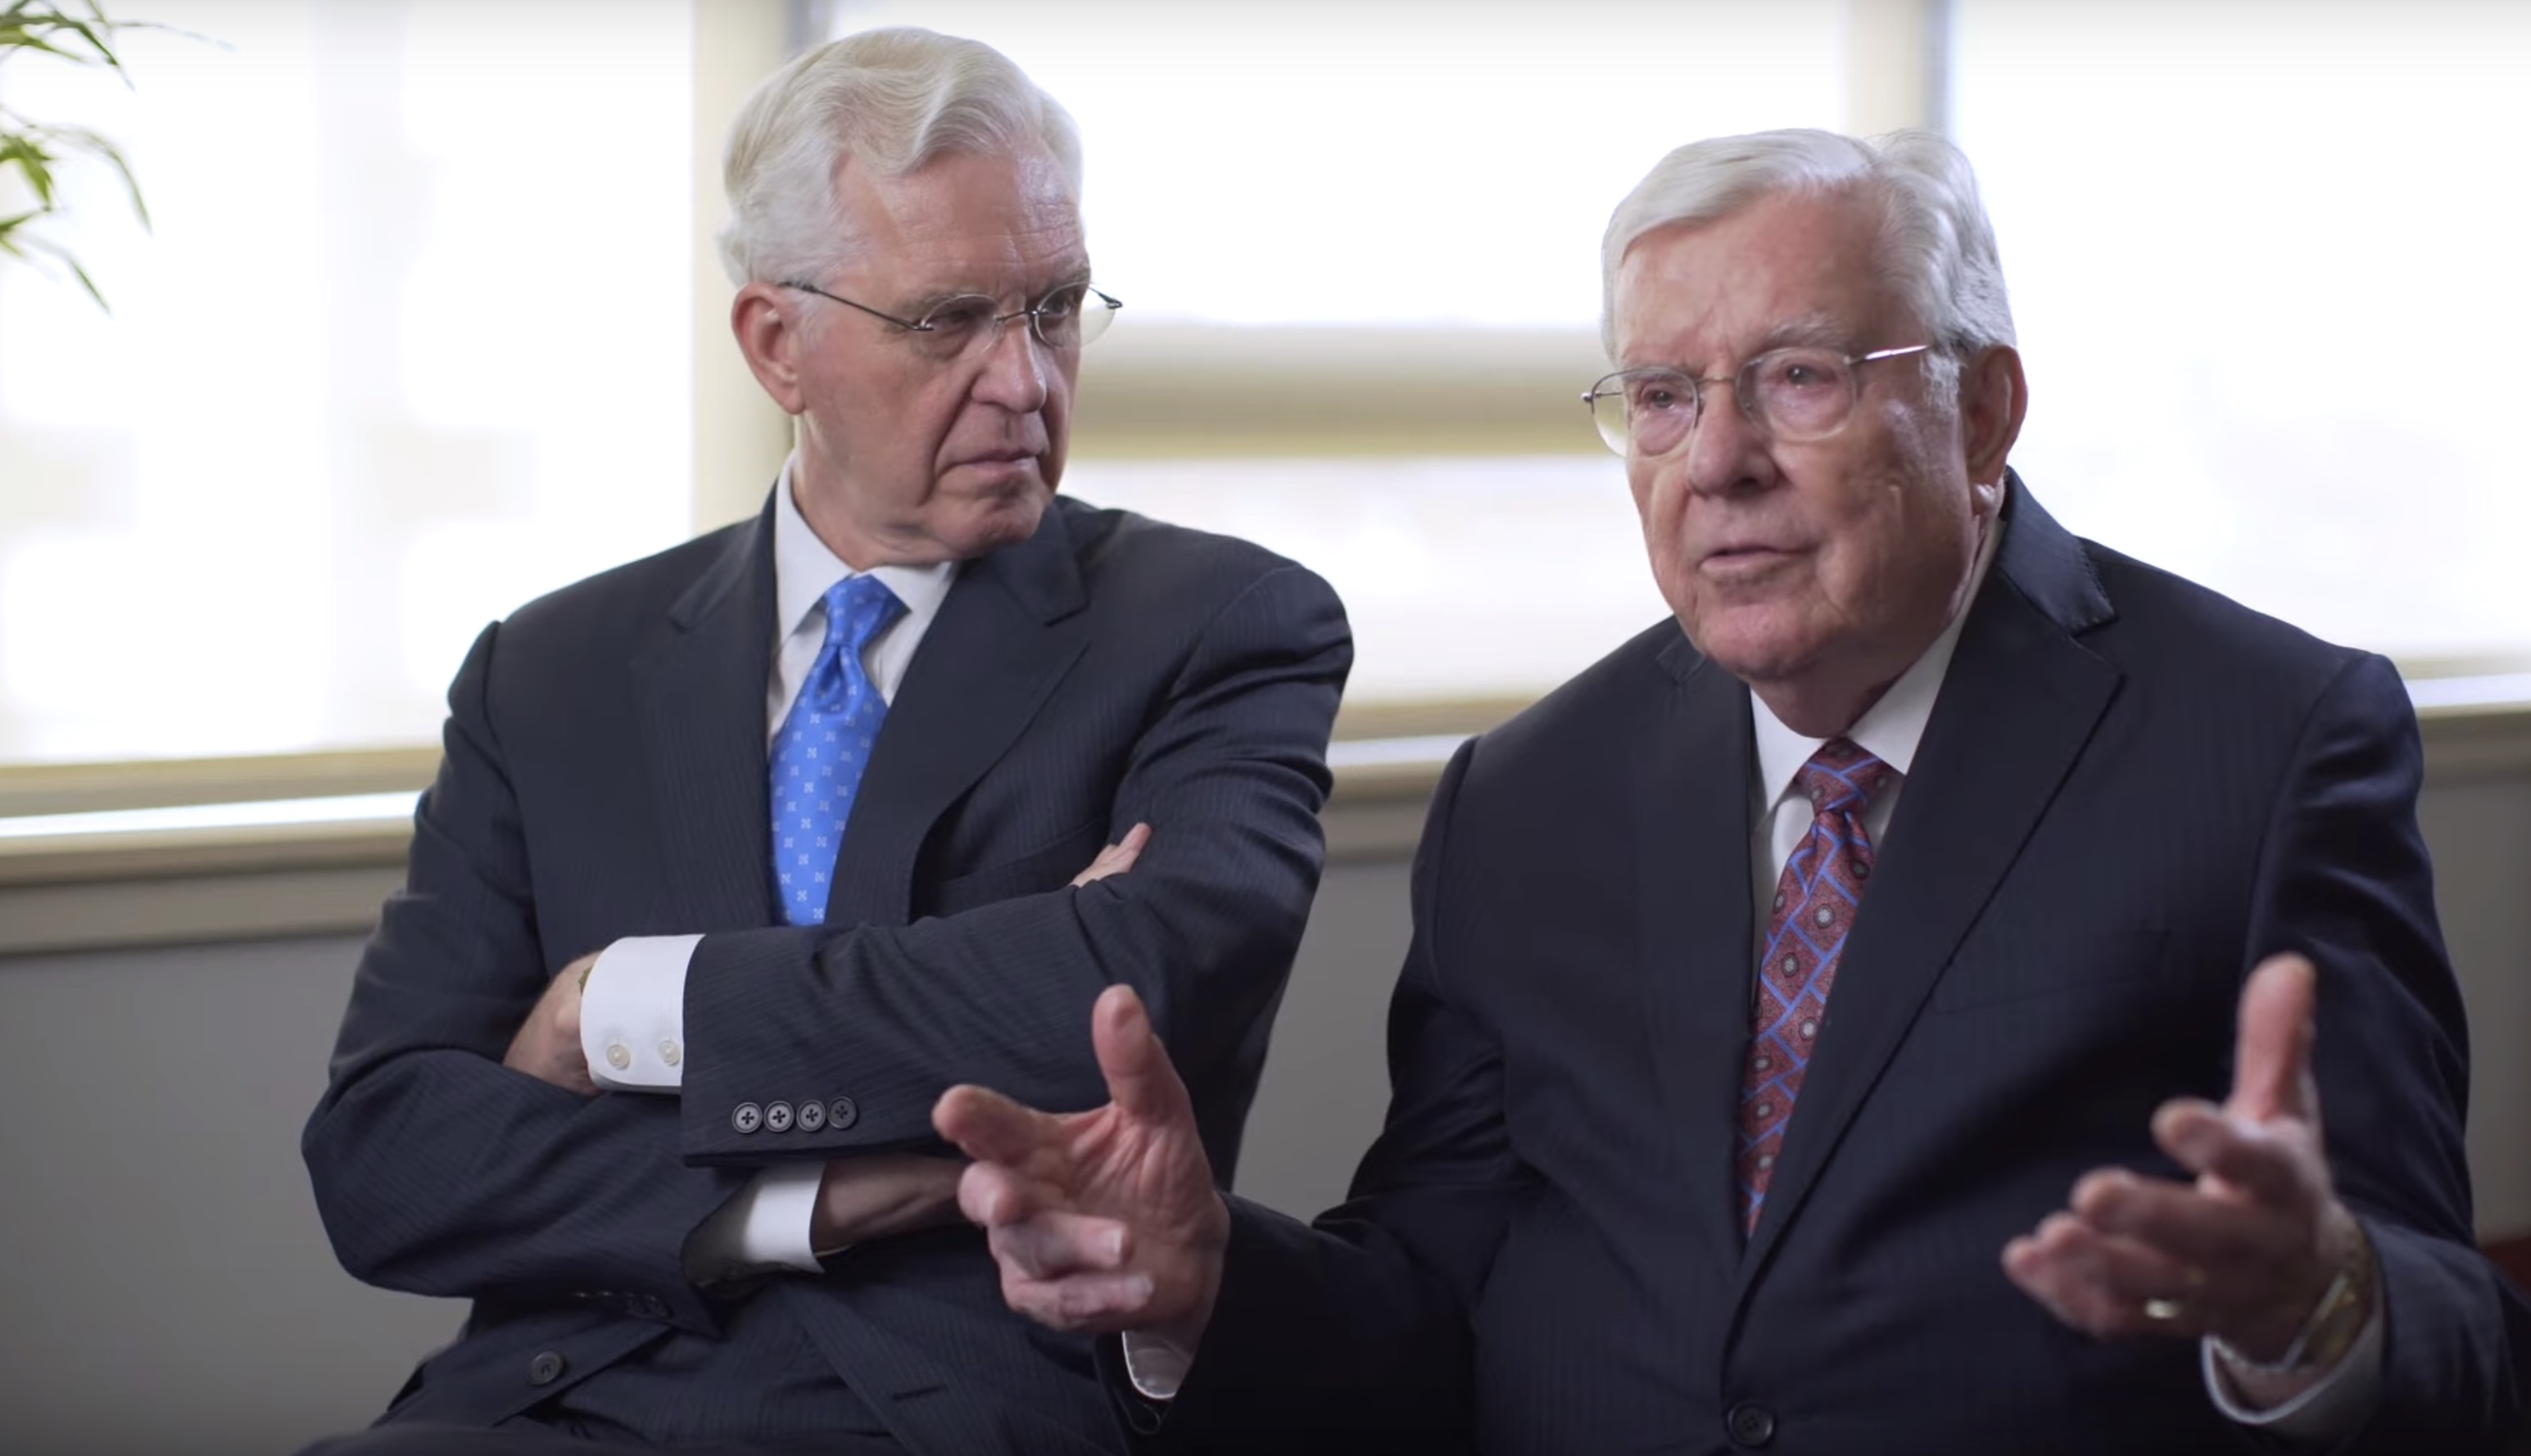 Elder D. Todd Christofferson, left, and President M. Russell Ballard, right, during an interview where President Ballard talks about his grandfather, Elder Melvin J. Ballard.